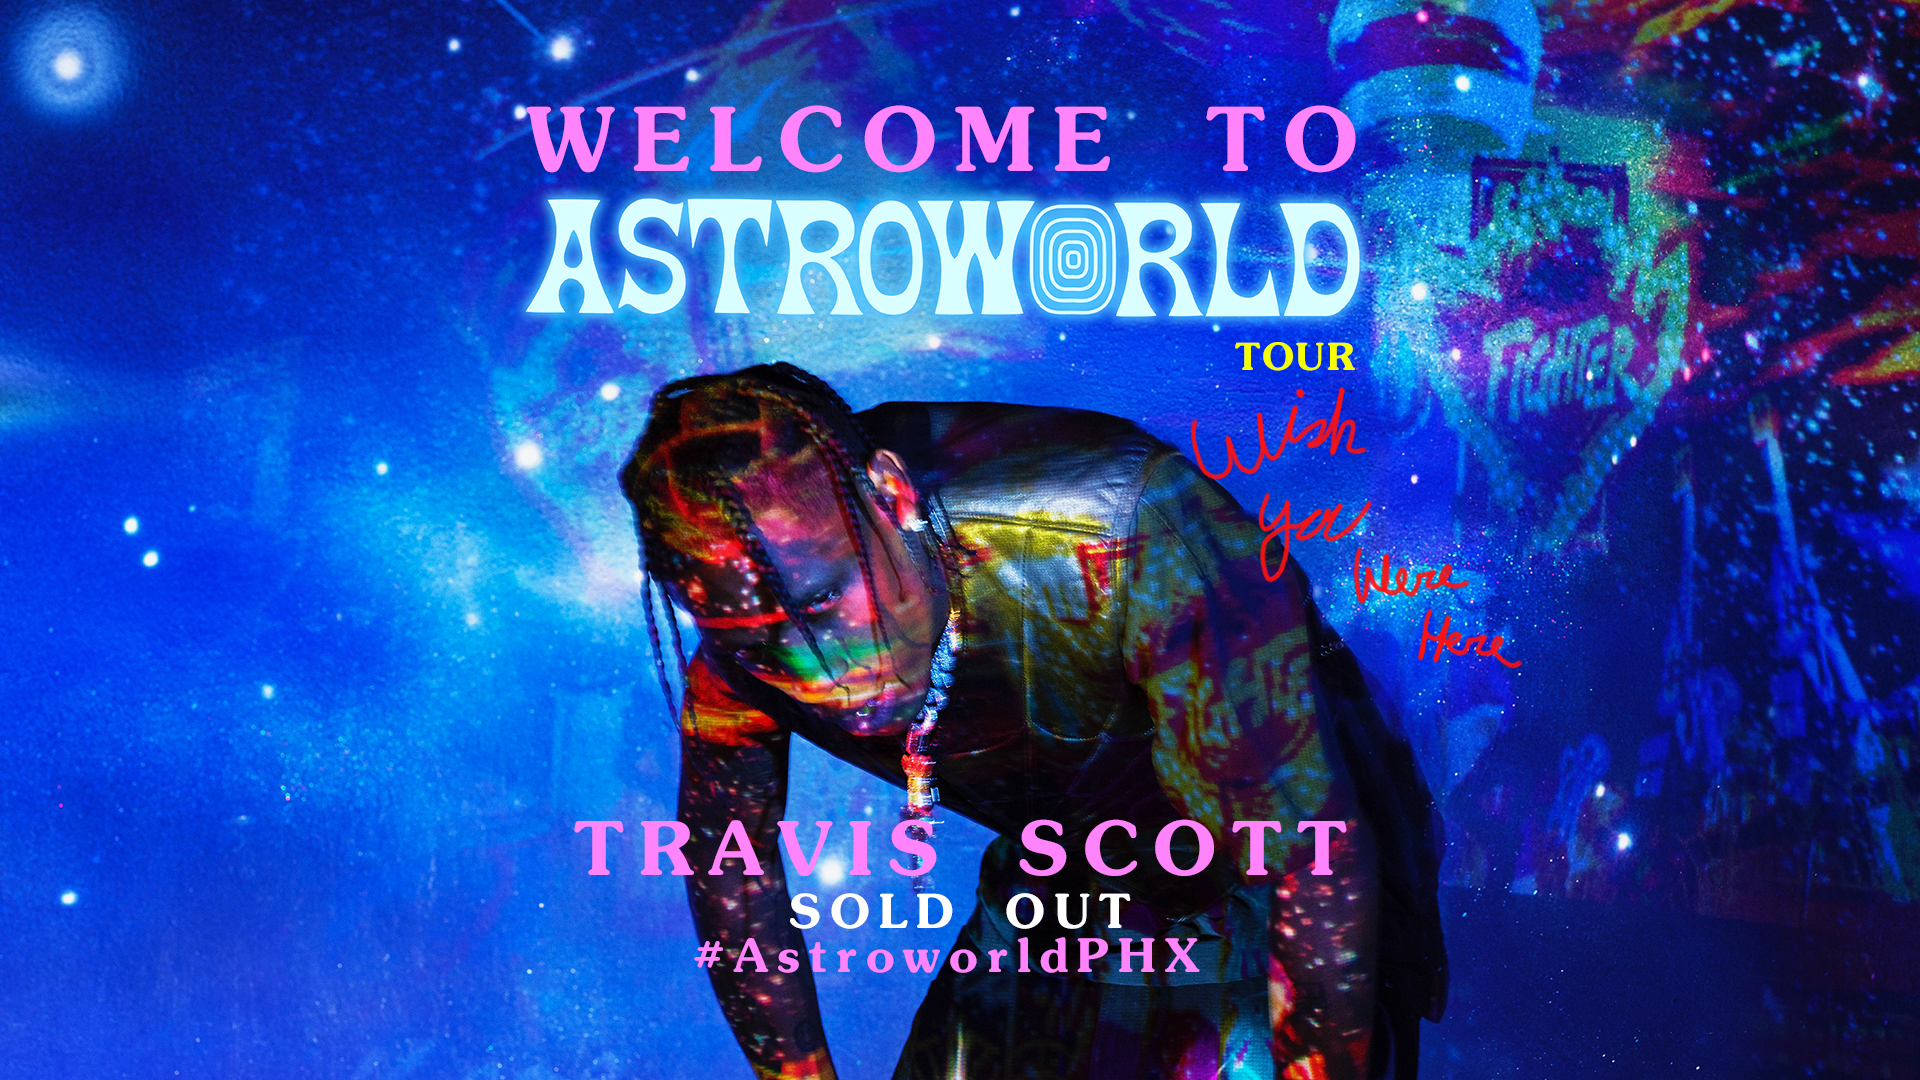 Travis Scott announces London O2 show: Tickets out for his Astroworld 2019 tour